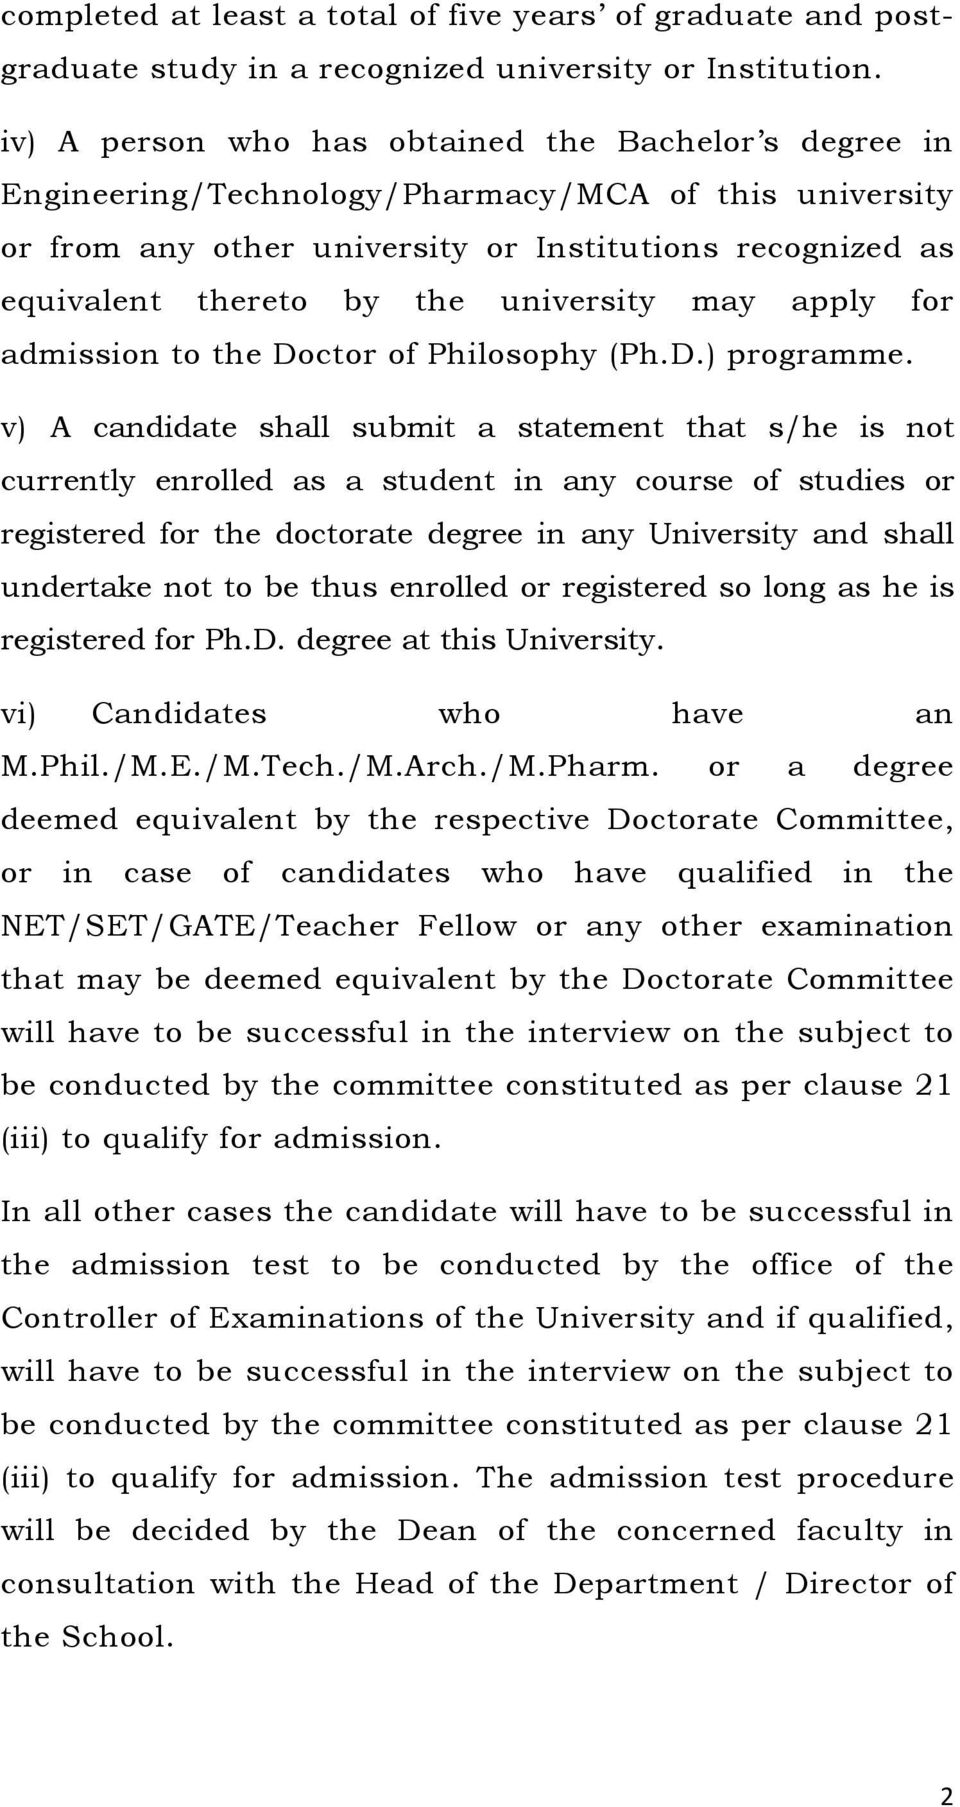 university may apply for admission to the Doctor of Philosophy (Ph.D.) programme.